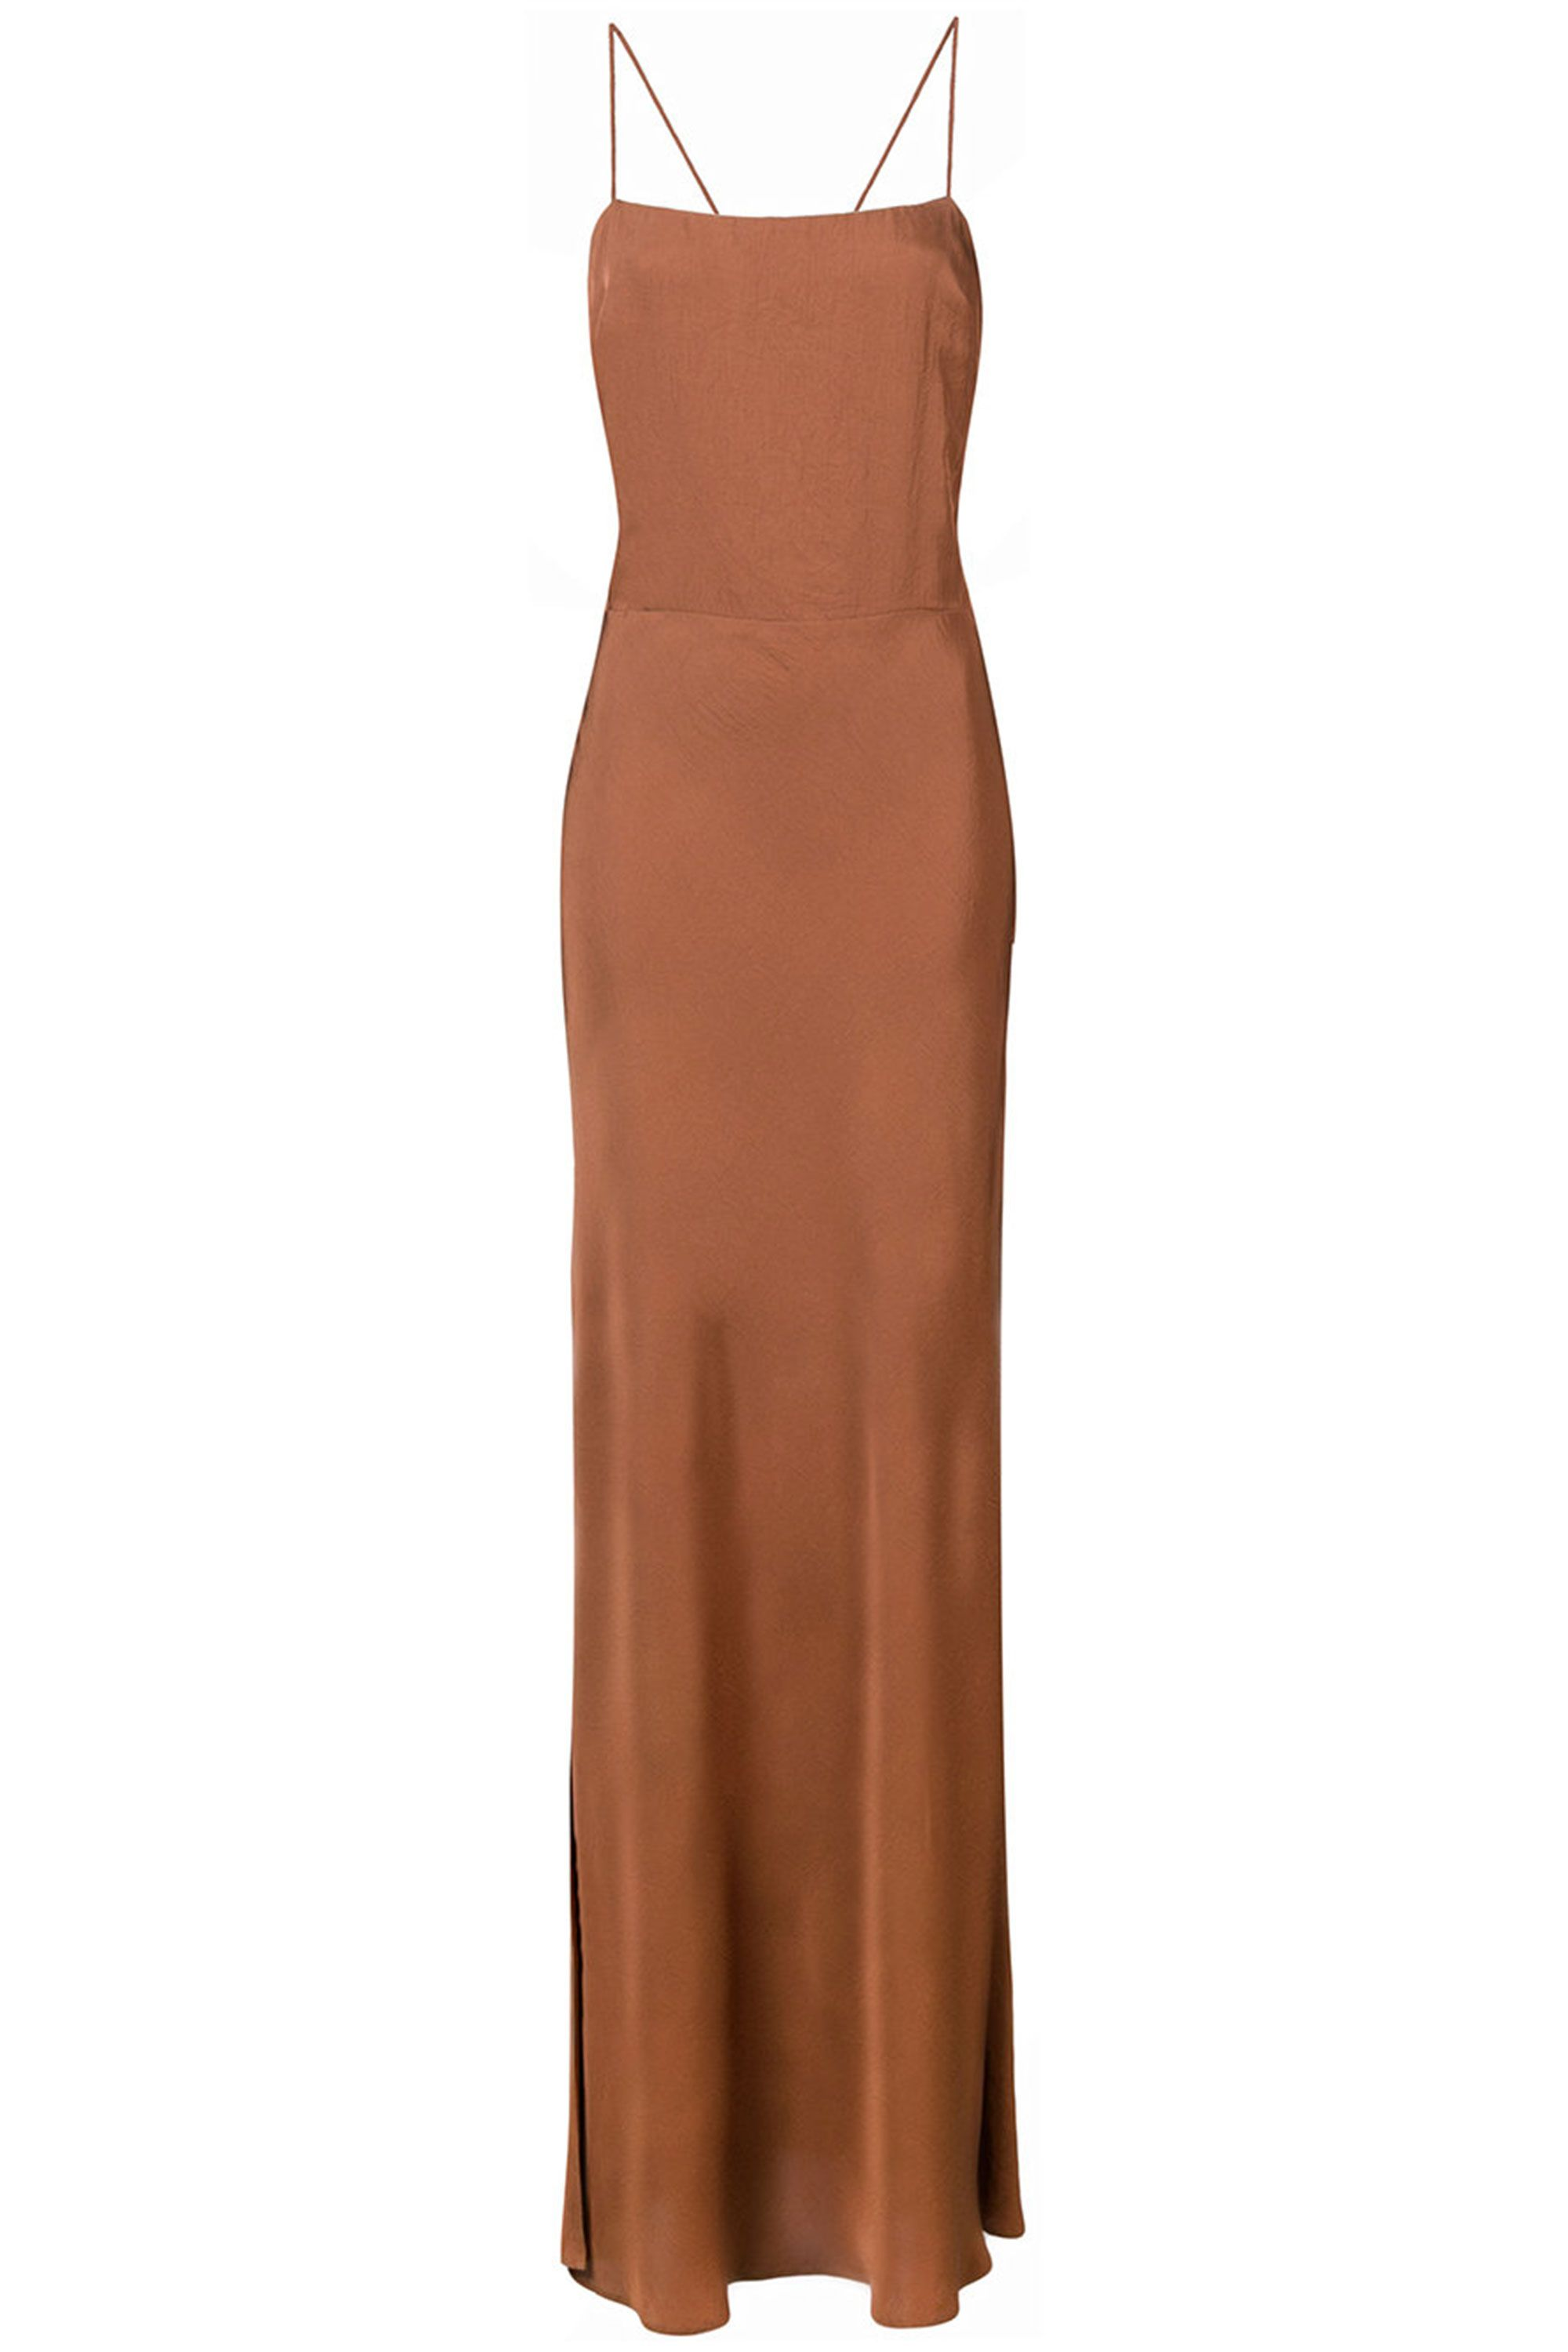 db4f259b903 Introducing this summer s  It  colour  Terracotta